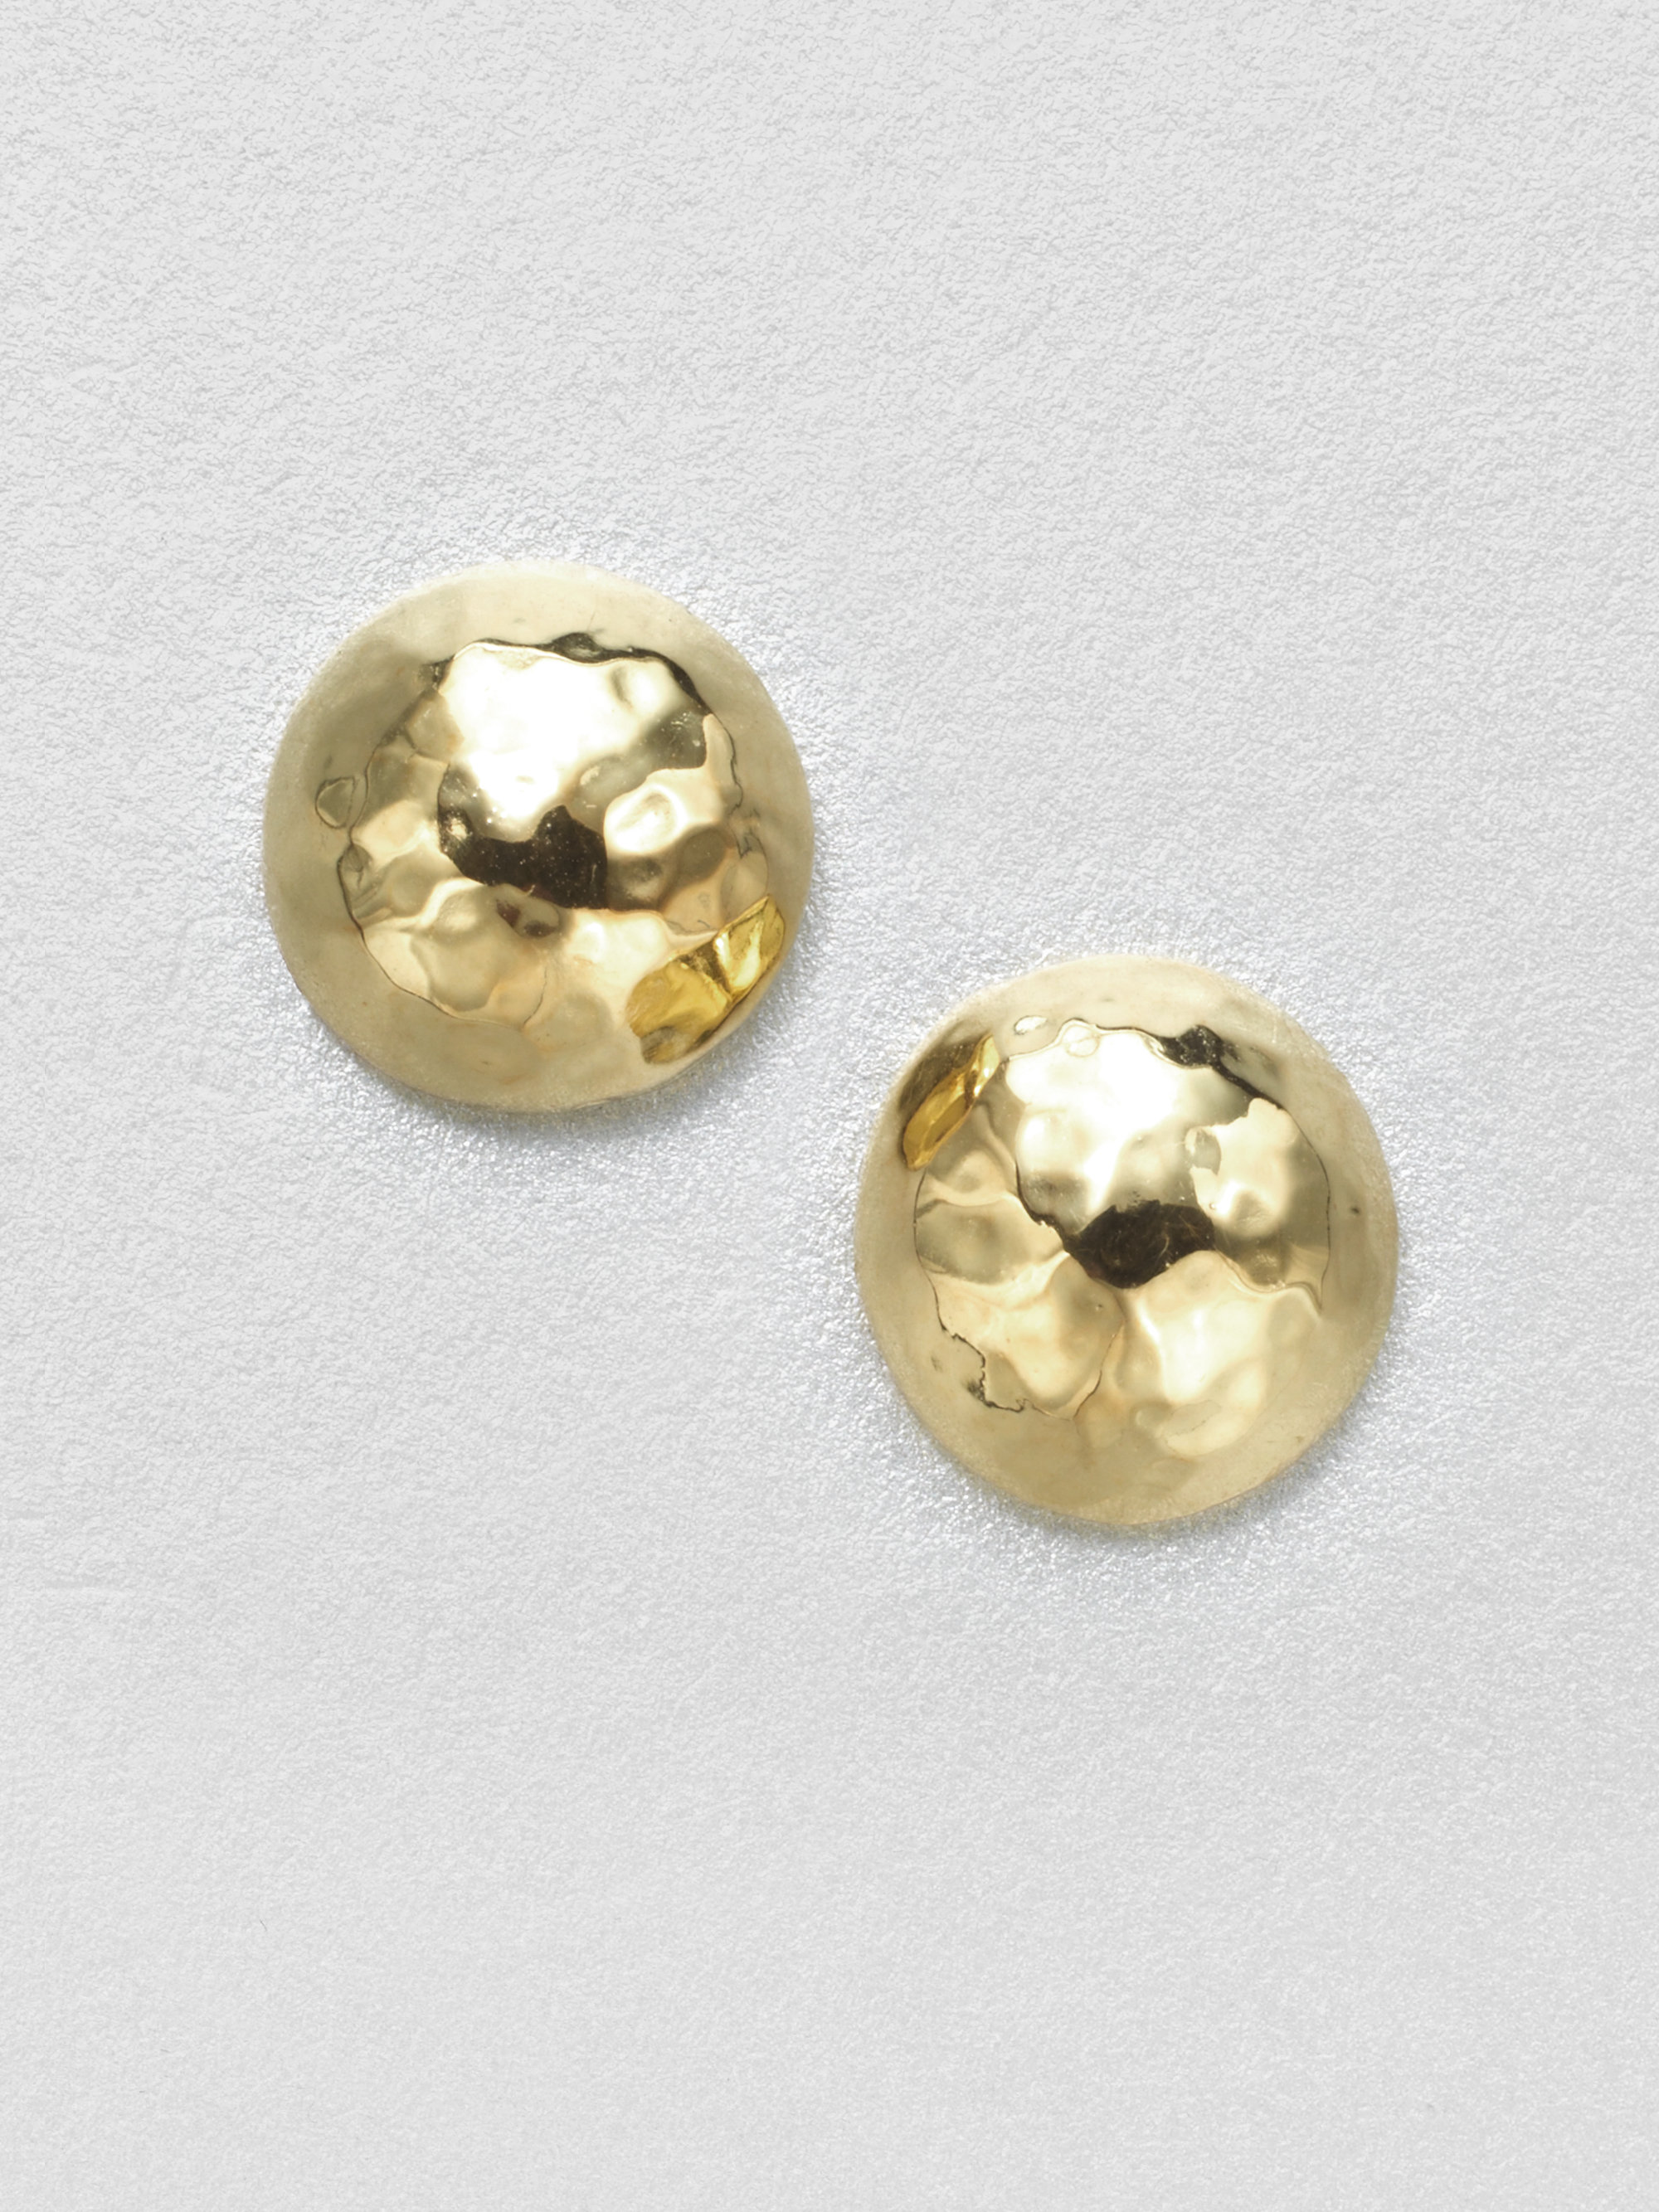 Ippolita Glamazon 18k Yellow Gold Pin Ball Stud Earrings